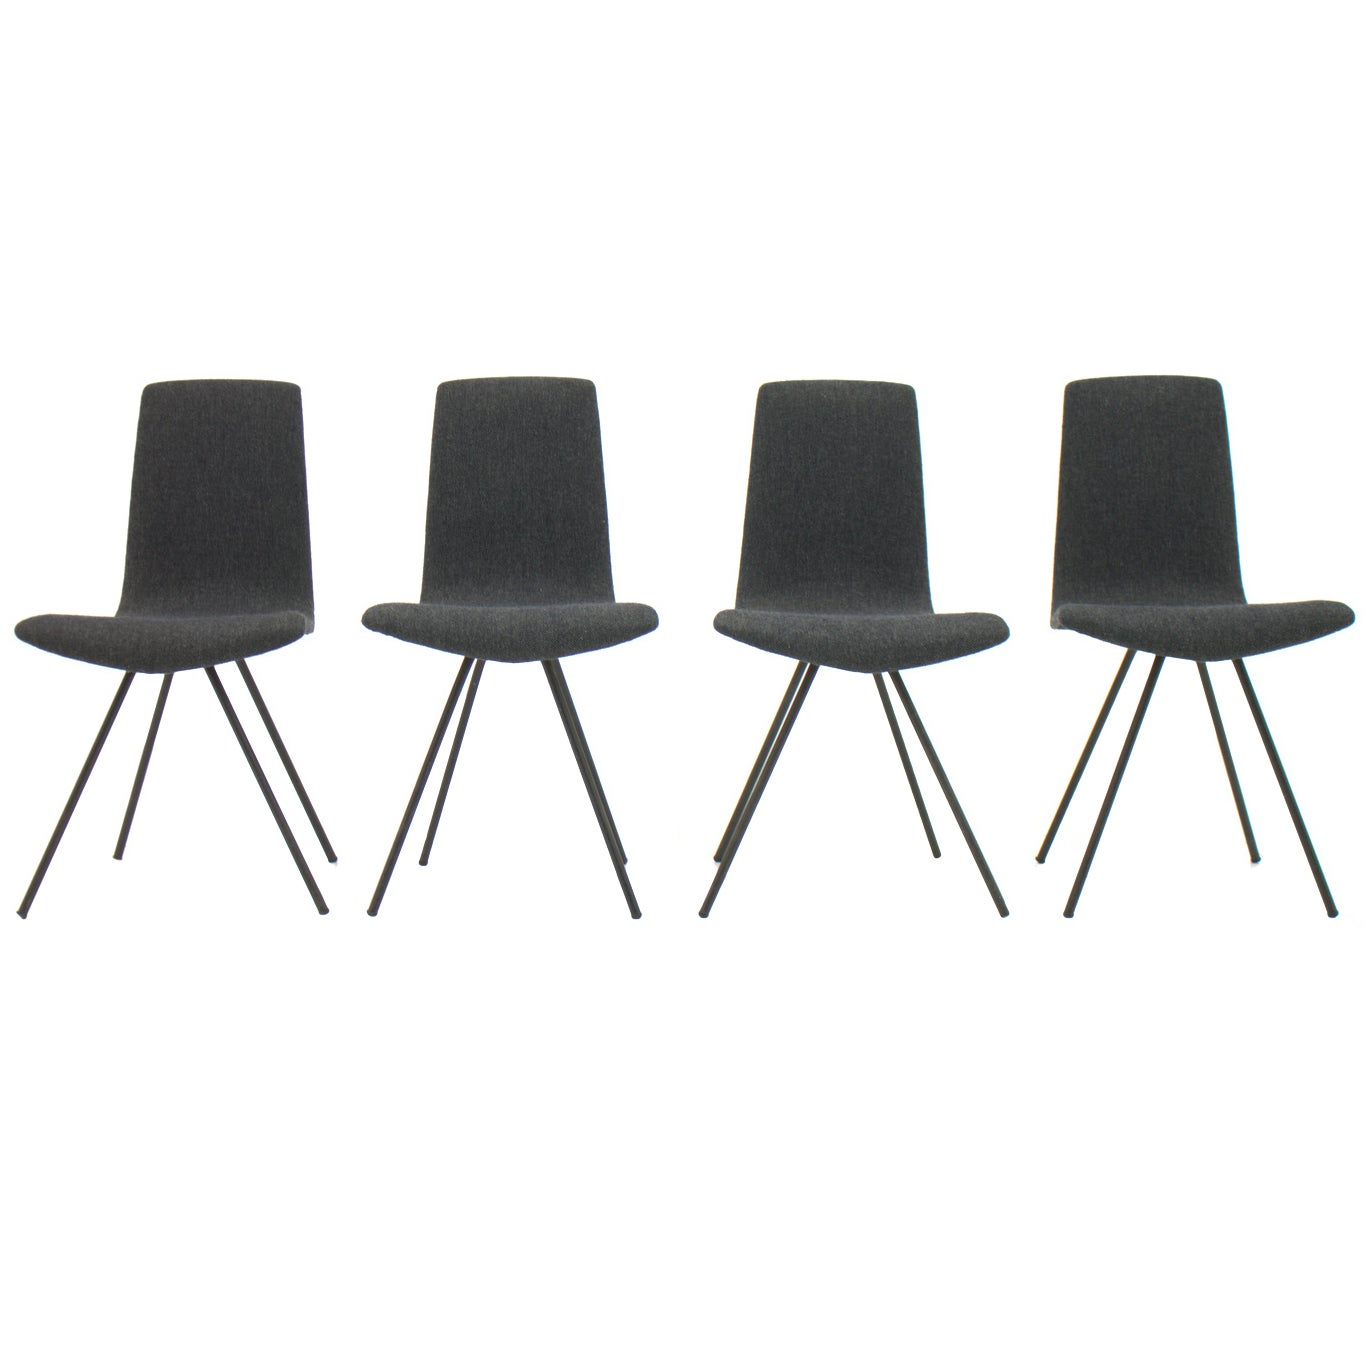 Set of Four Dining Room Chairs by Hans Bellmann, Switzerland, 1952